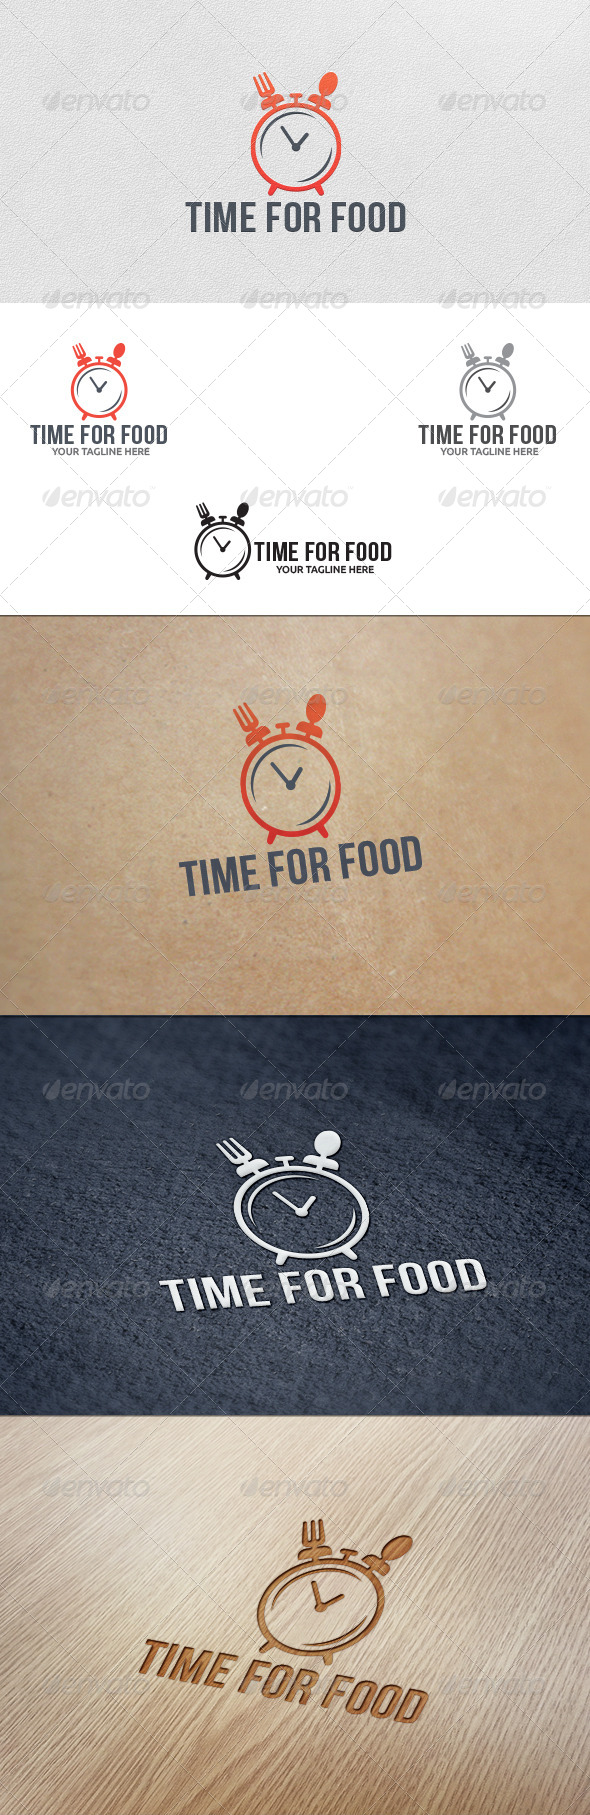 Food Time - Logo Template